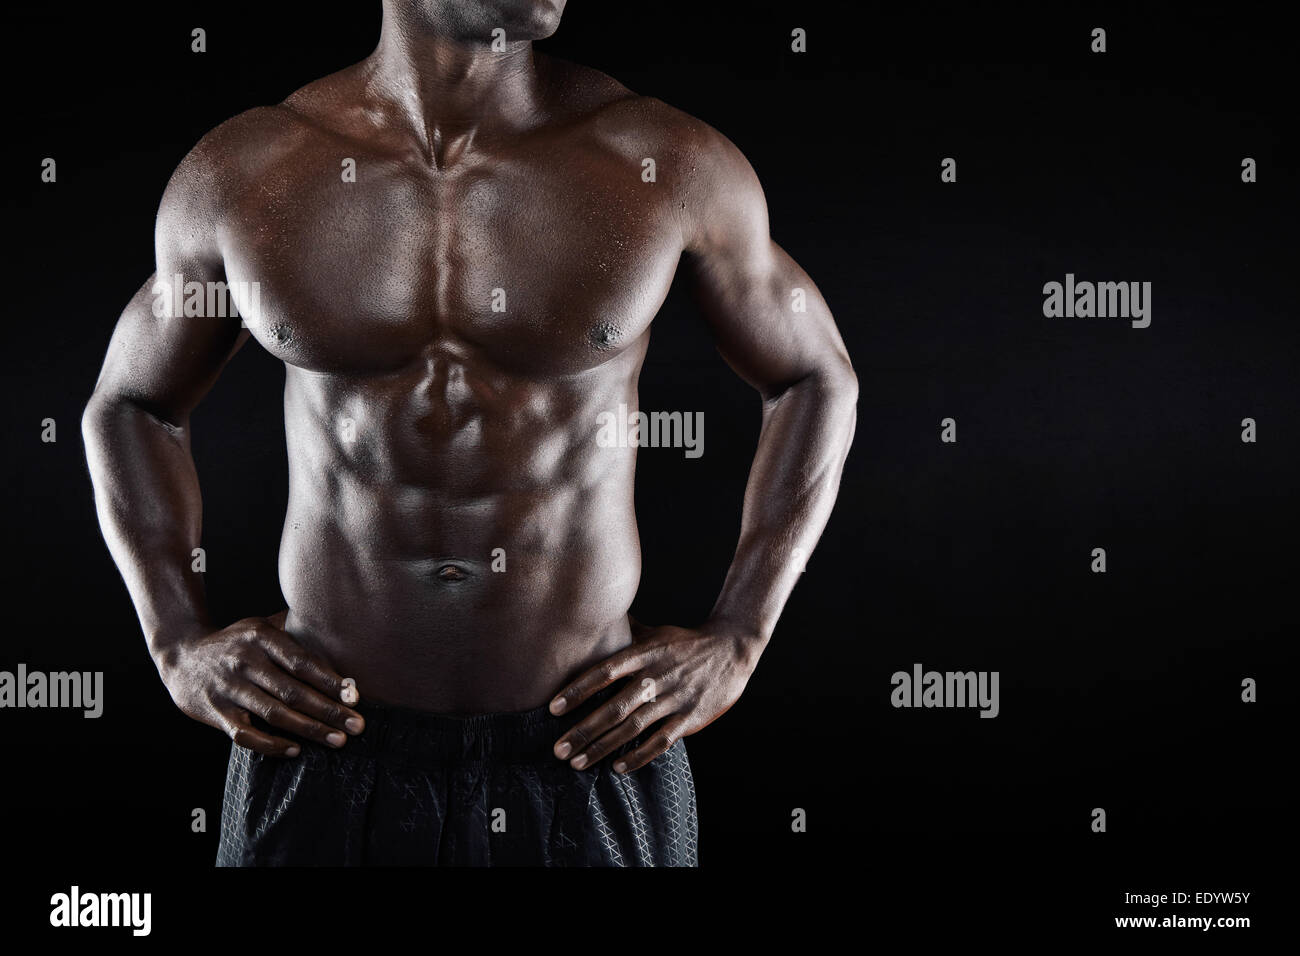 Cropped image of shirtless African man with hands on hip while standing against black background. Close-up of torso - Stock Image